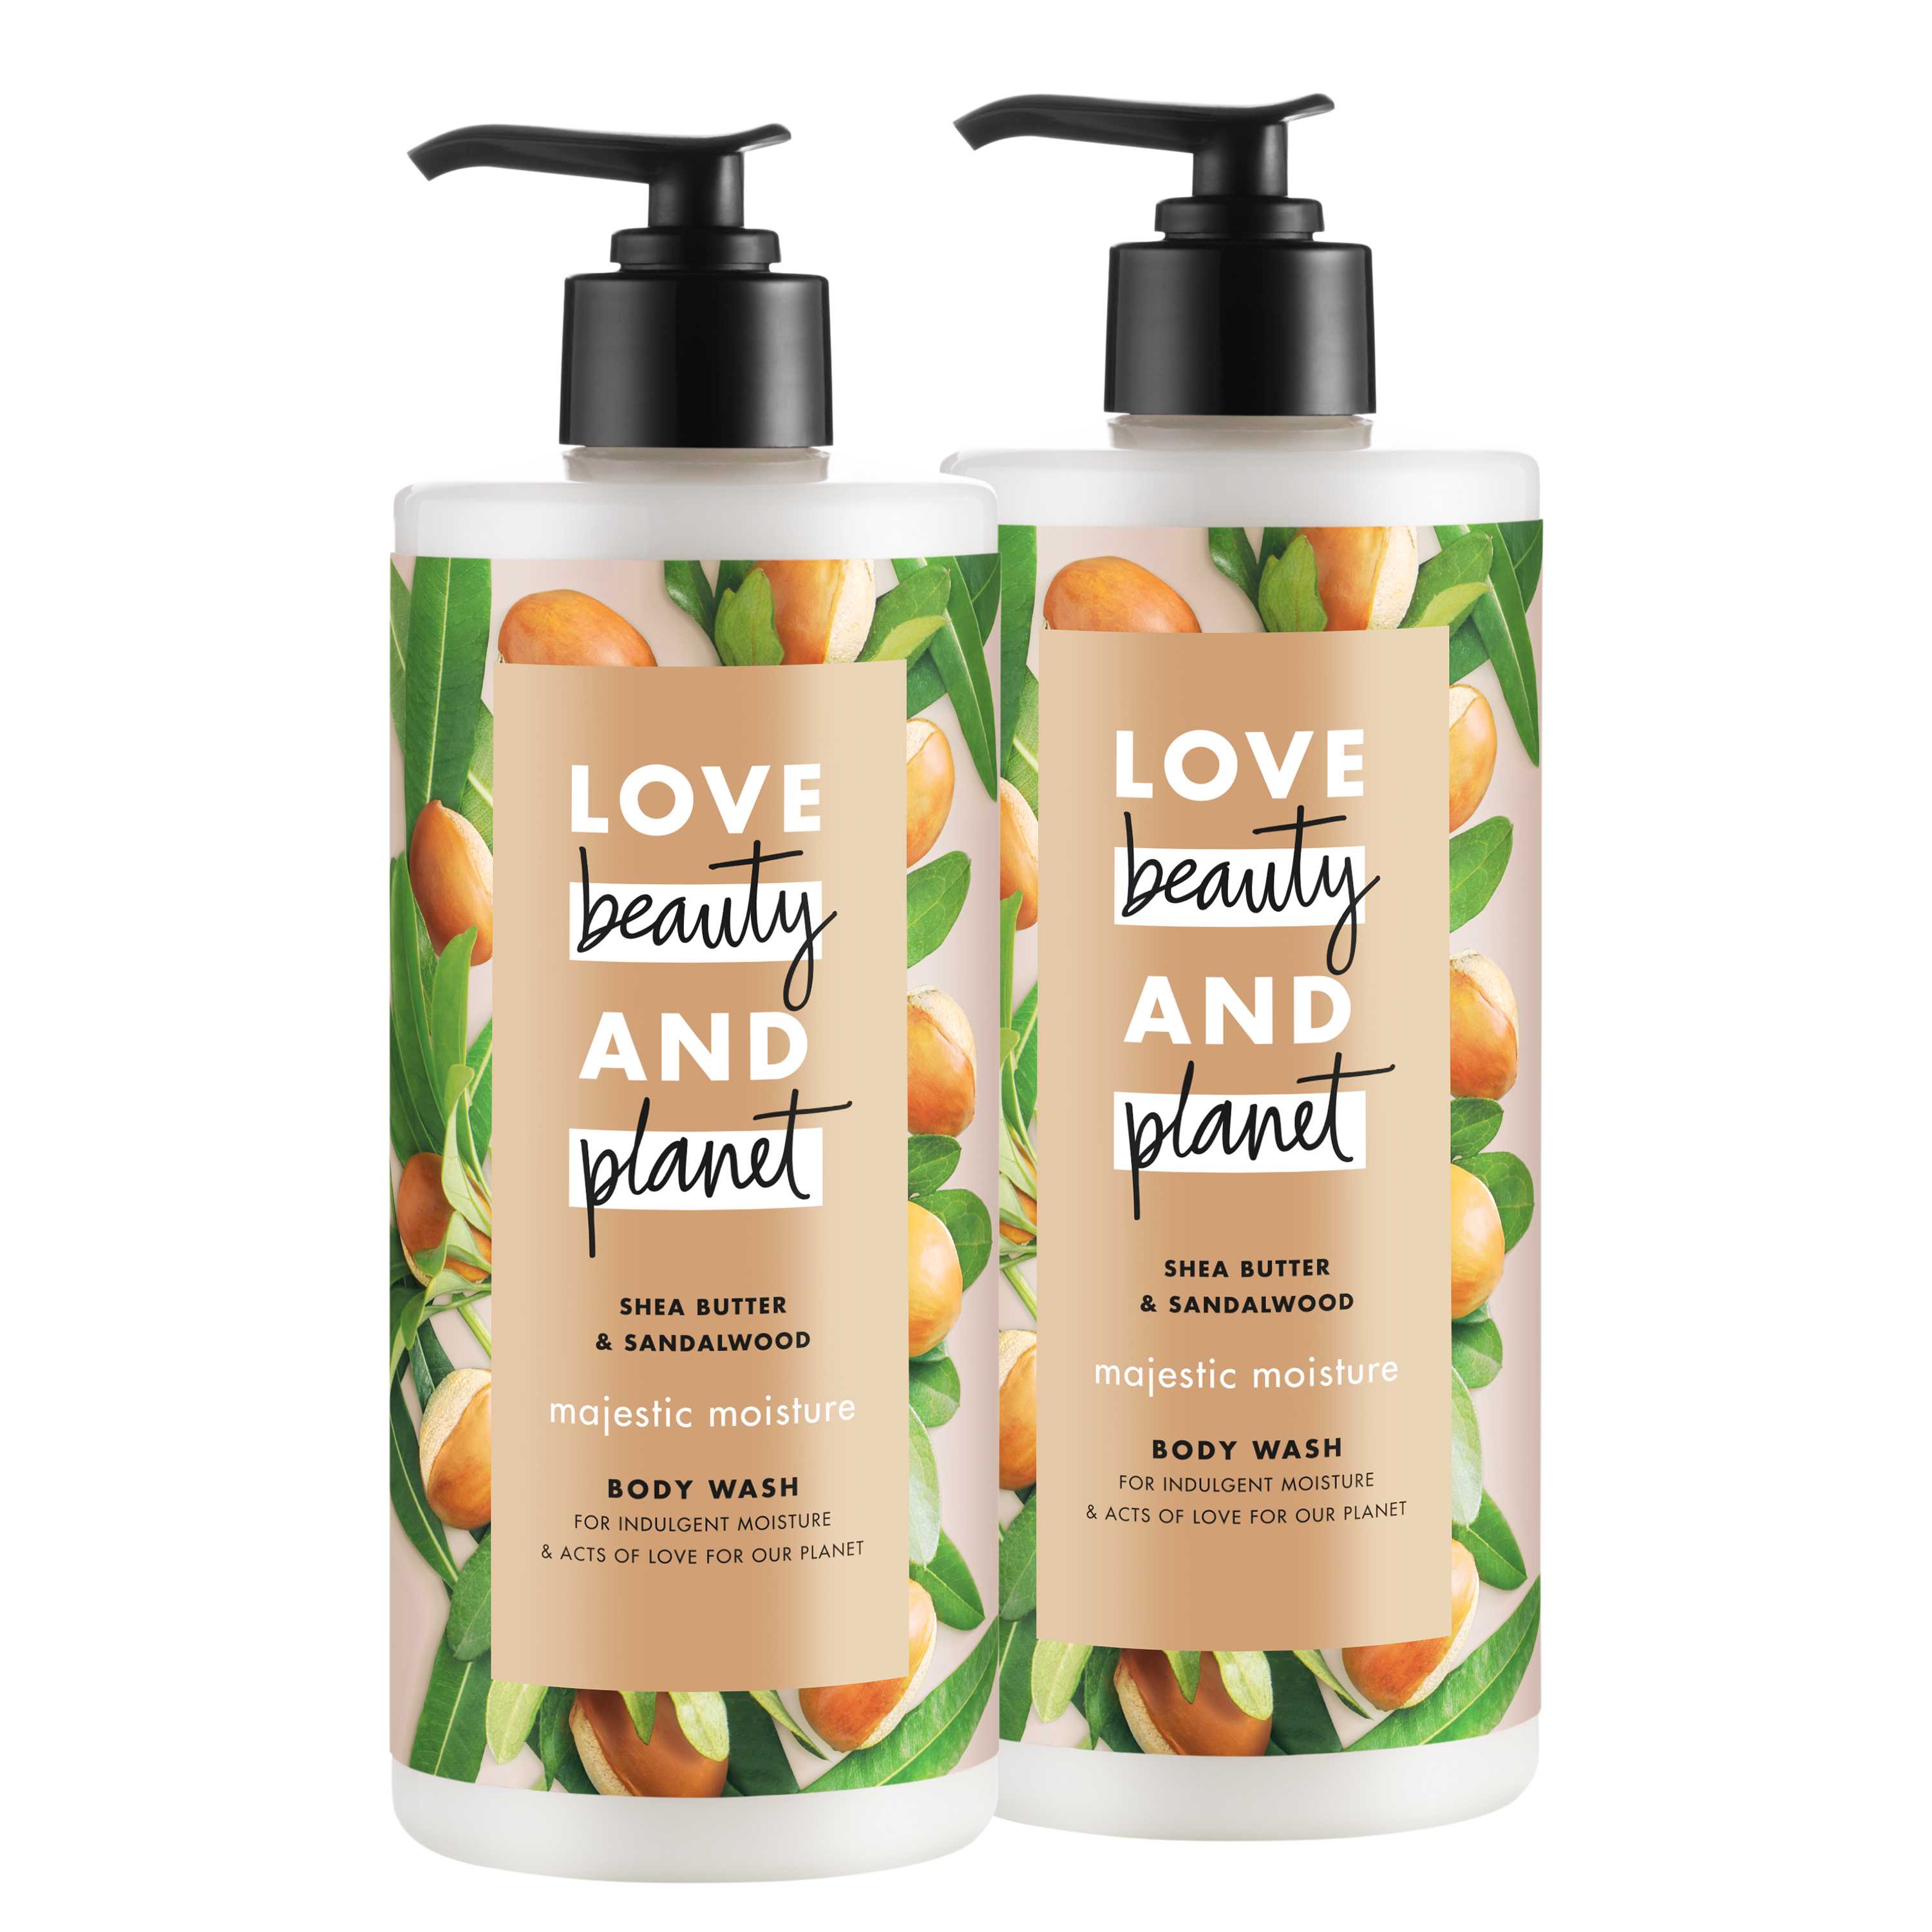 Love Beauty And Planet Shea Butter & Sandalwood, Vegan, Paraben Free, and Sulfate Free, Majestic Moisture Body Wash, 16 oz, 2 count